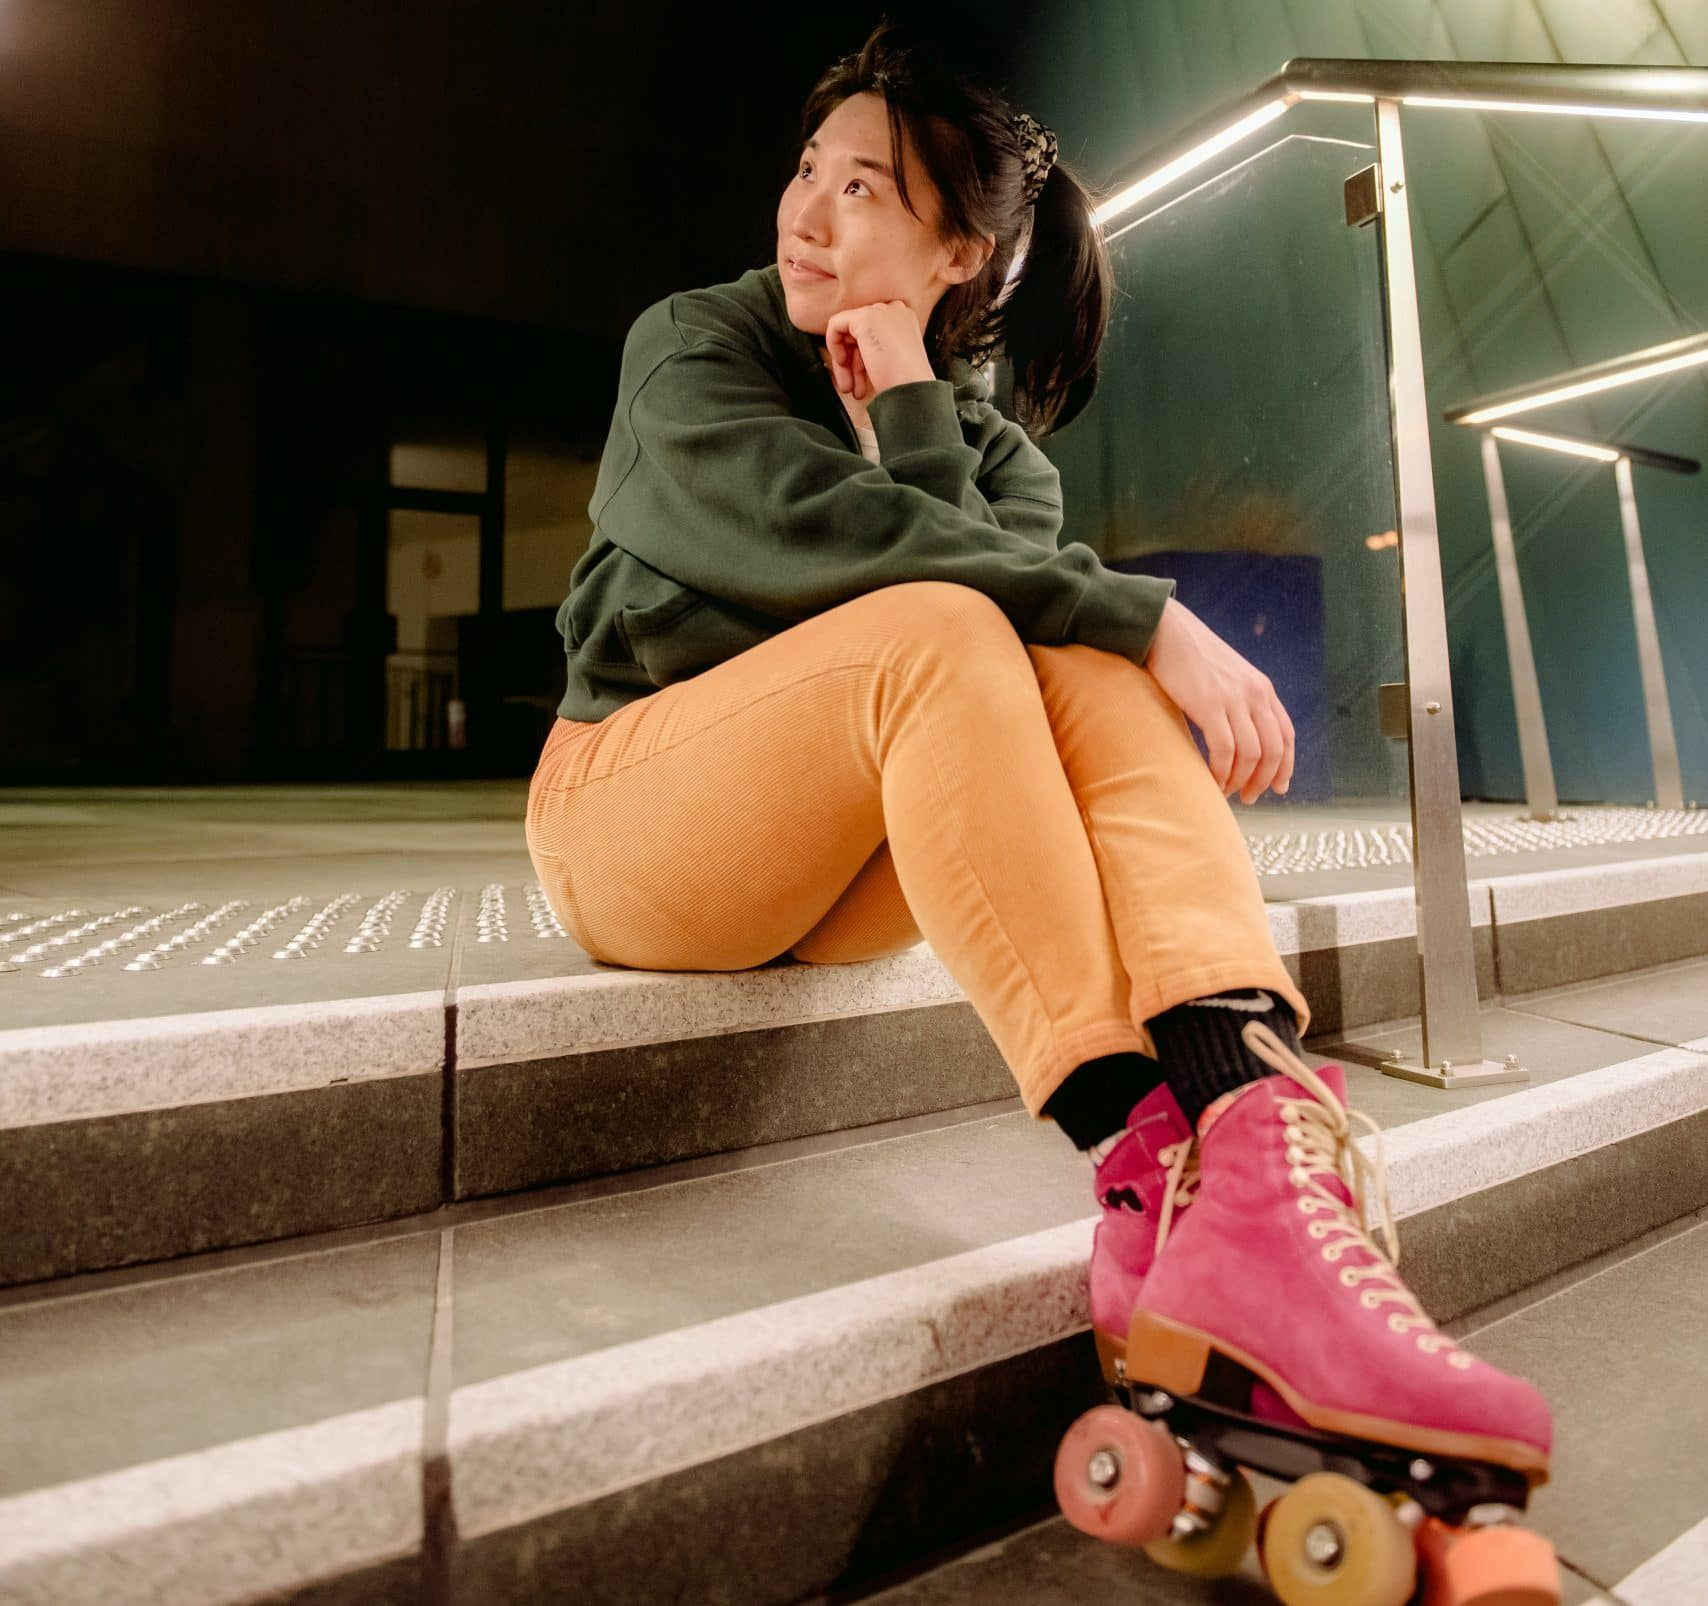 Stylish young woman in pink and orange quad skates sitting on steps